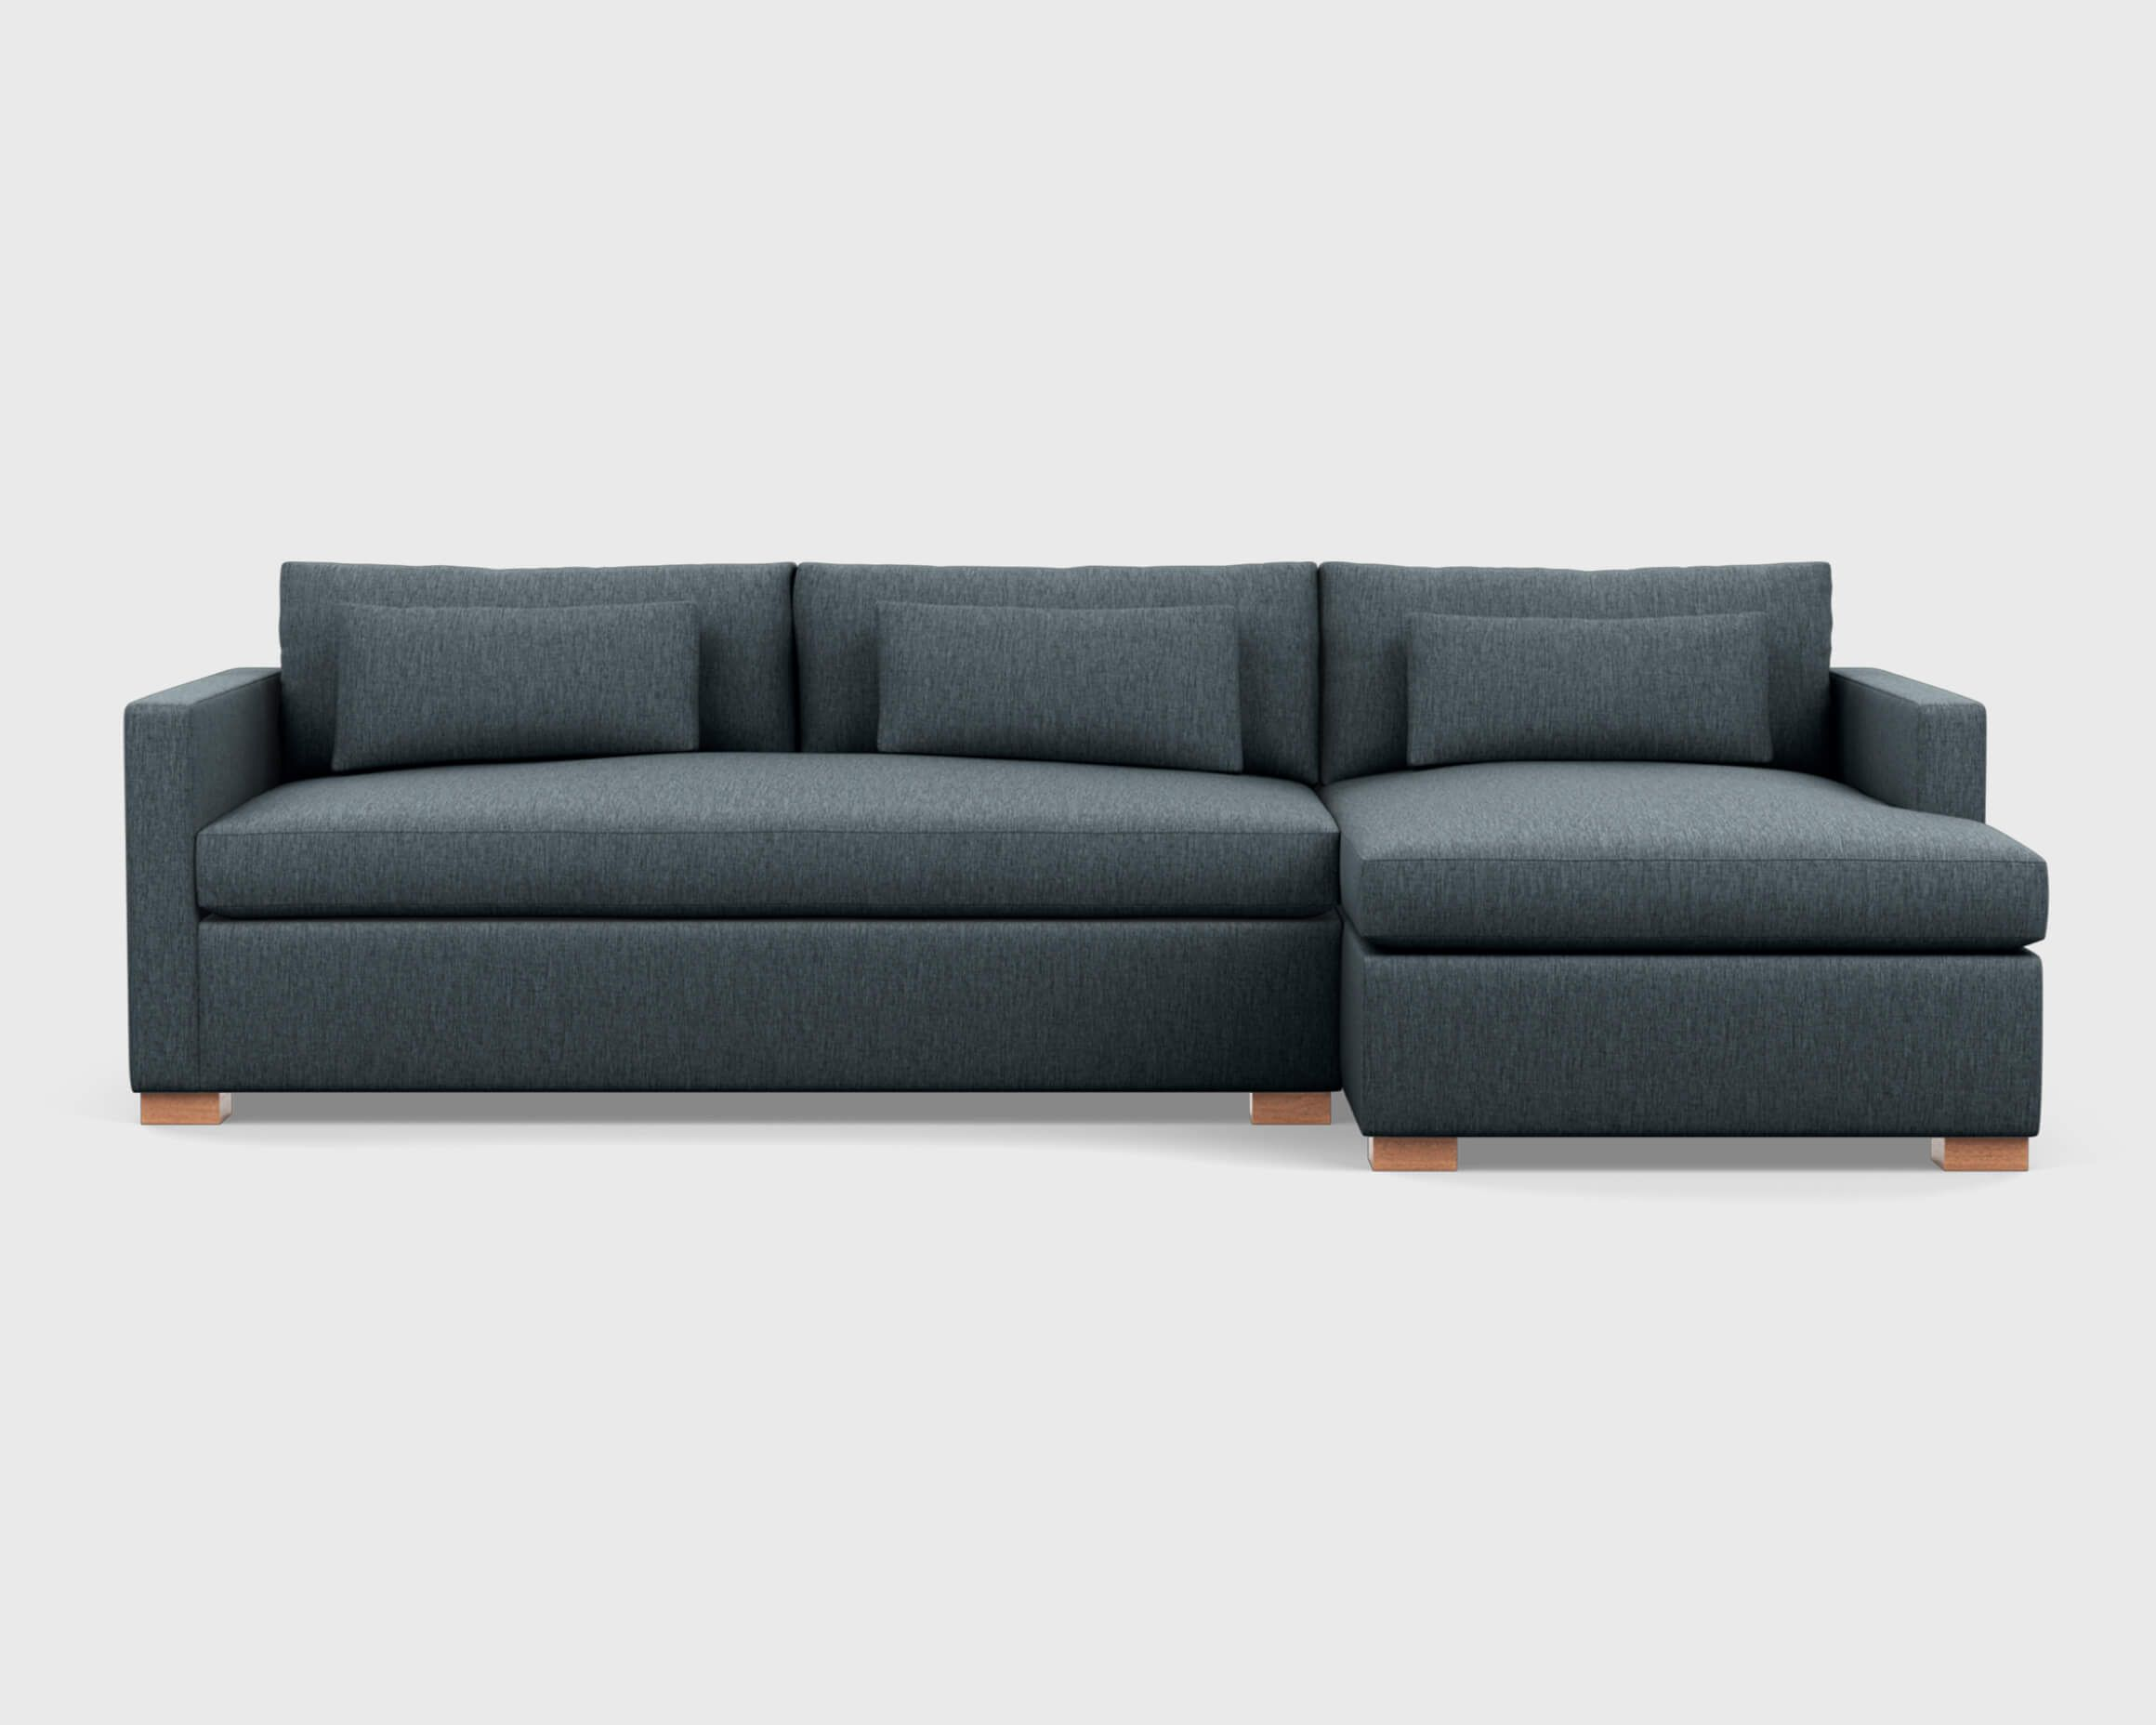 Custom Made Sofas Design Your Own Furniture Interior Define Interior Define Sofa Design Custom Sofa Furniture